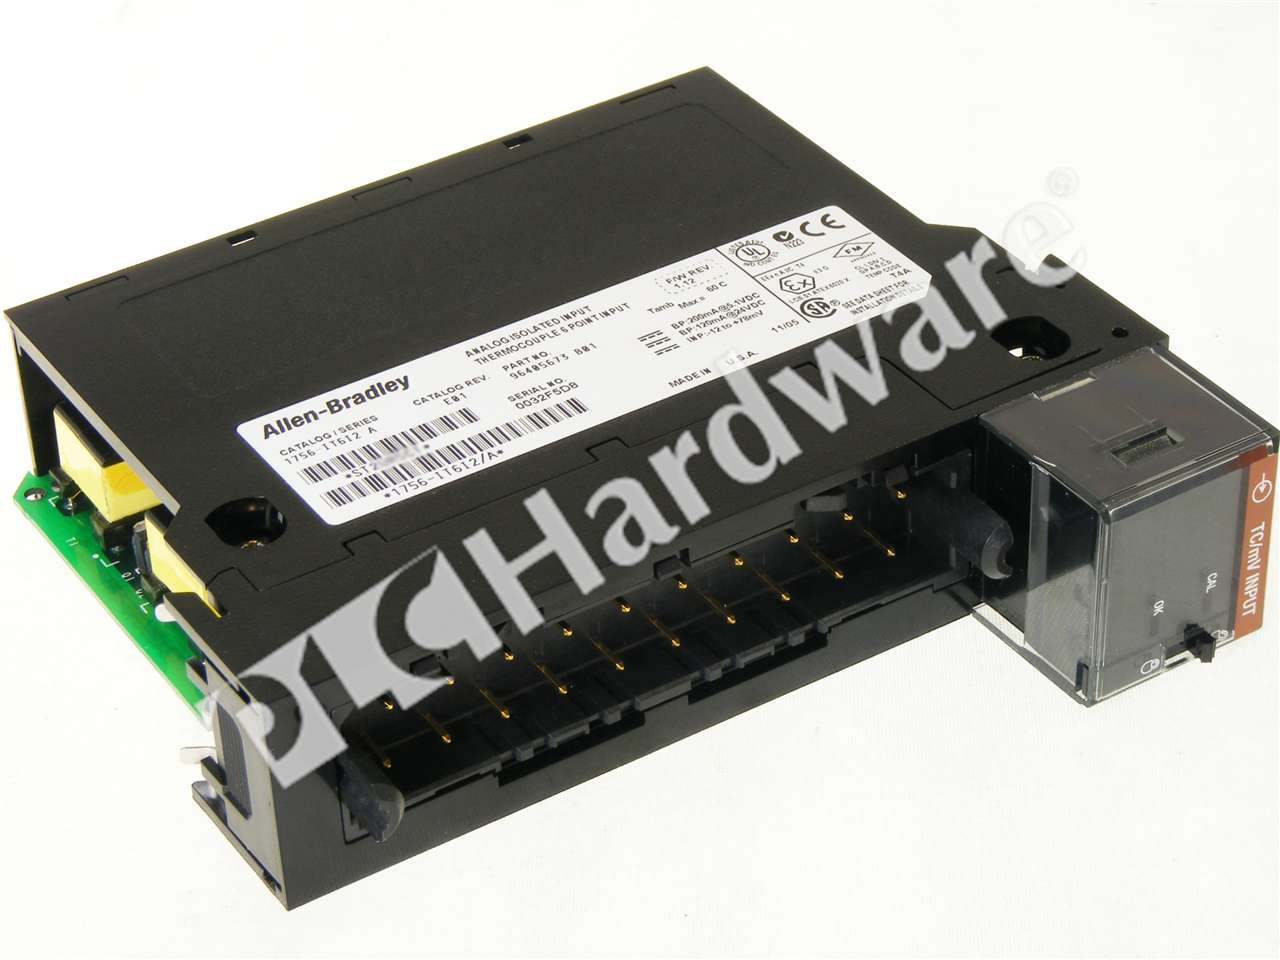 RA 1756 IT6I2 A UPP_3_12_10_01_14_54_b plc hardware allen bradley 1756 it6i2 enhanced isolated 1756 hsc wiring diagram at gsmportal.co